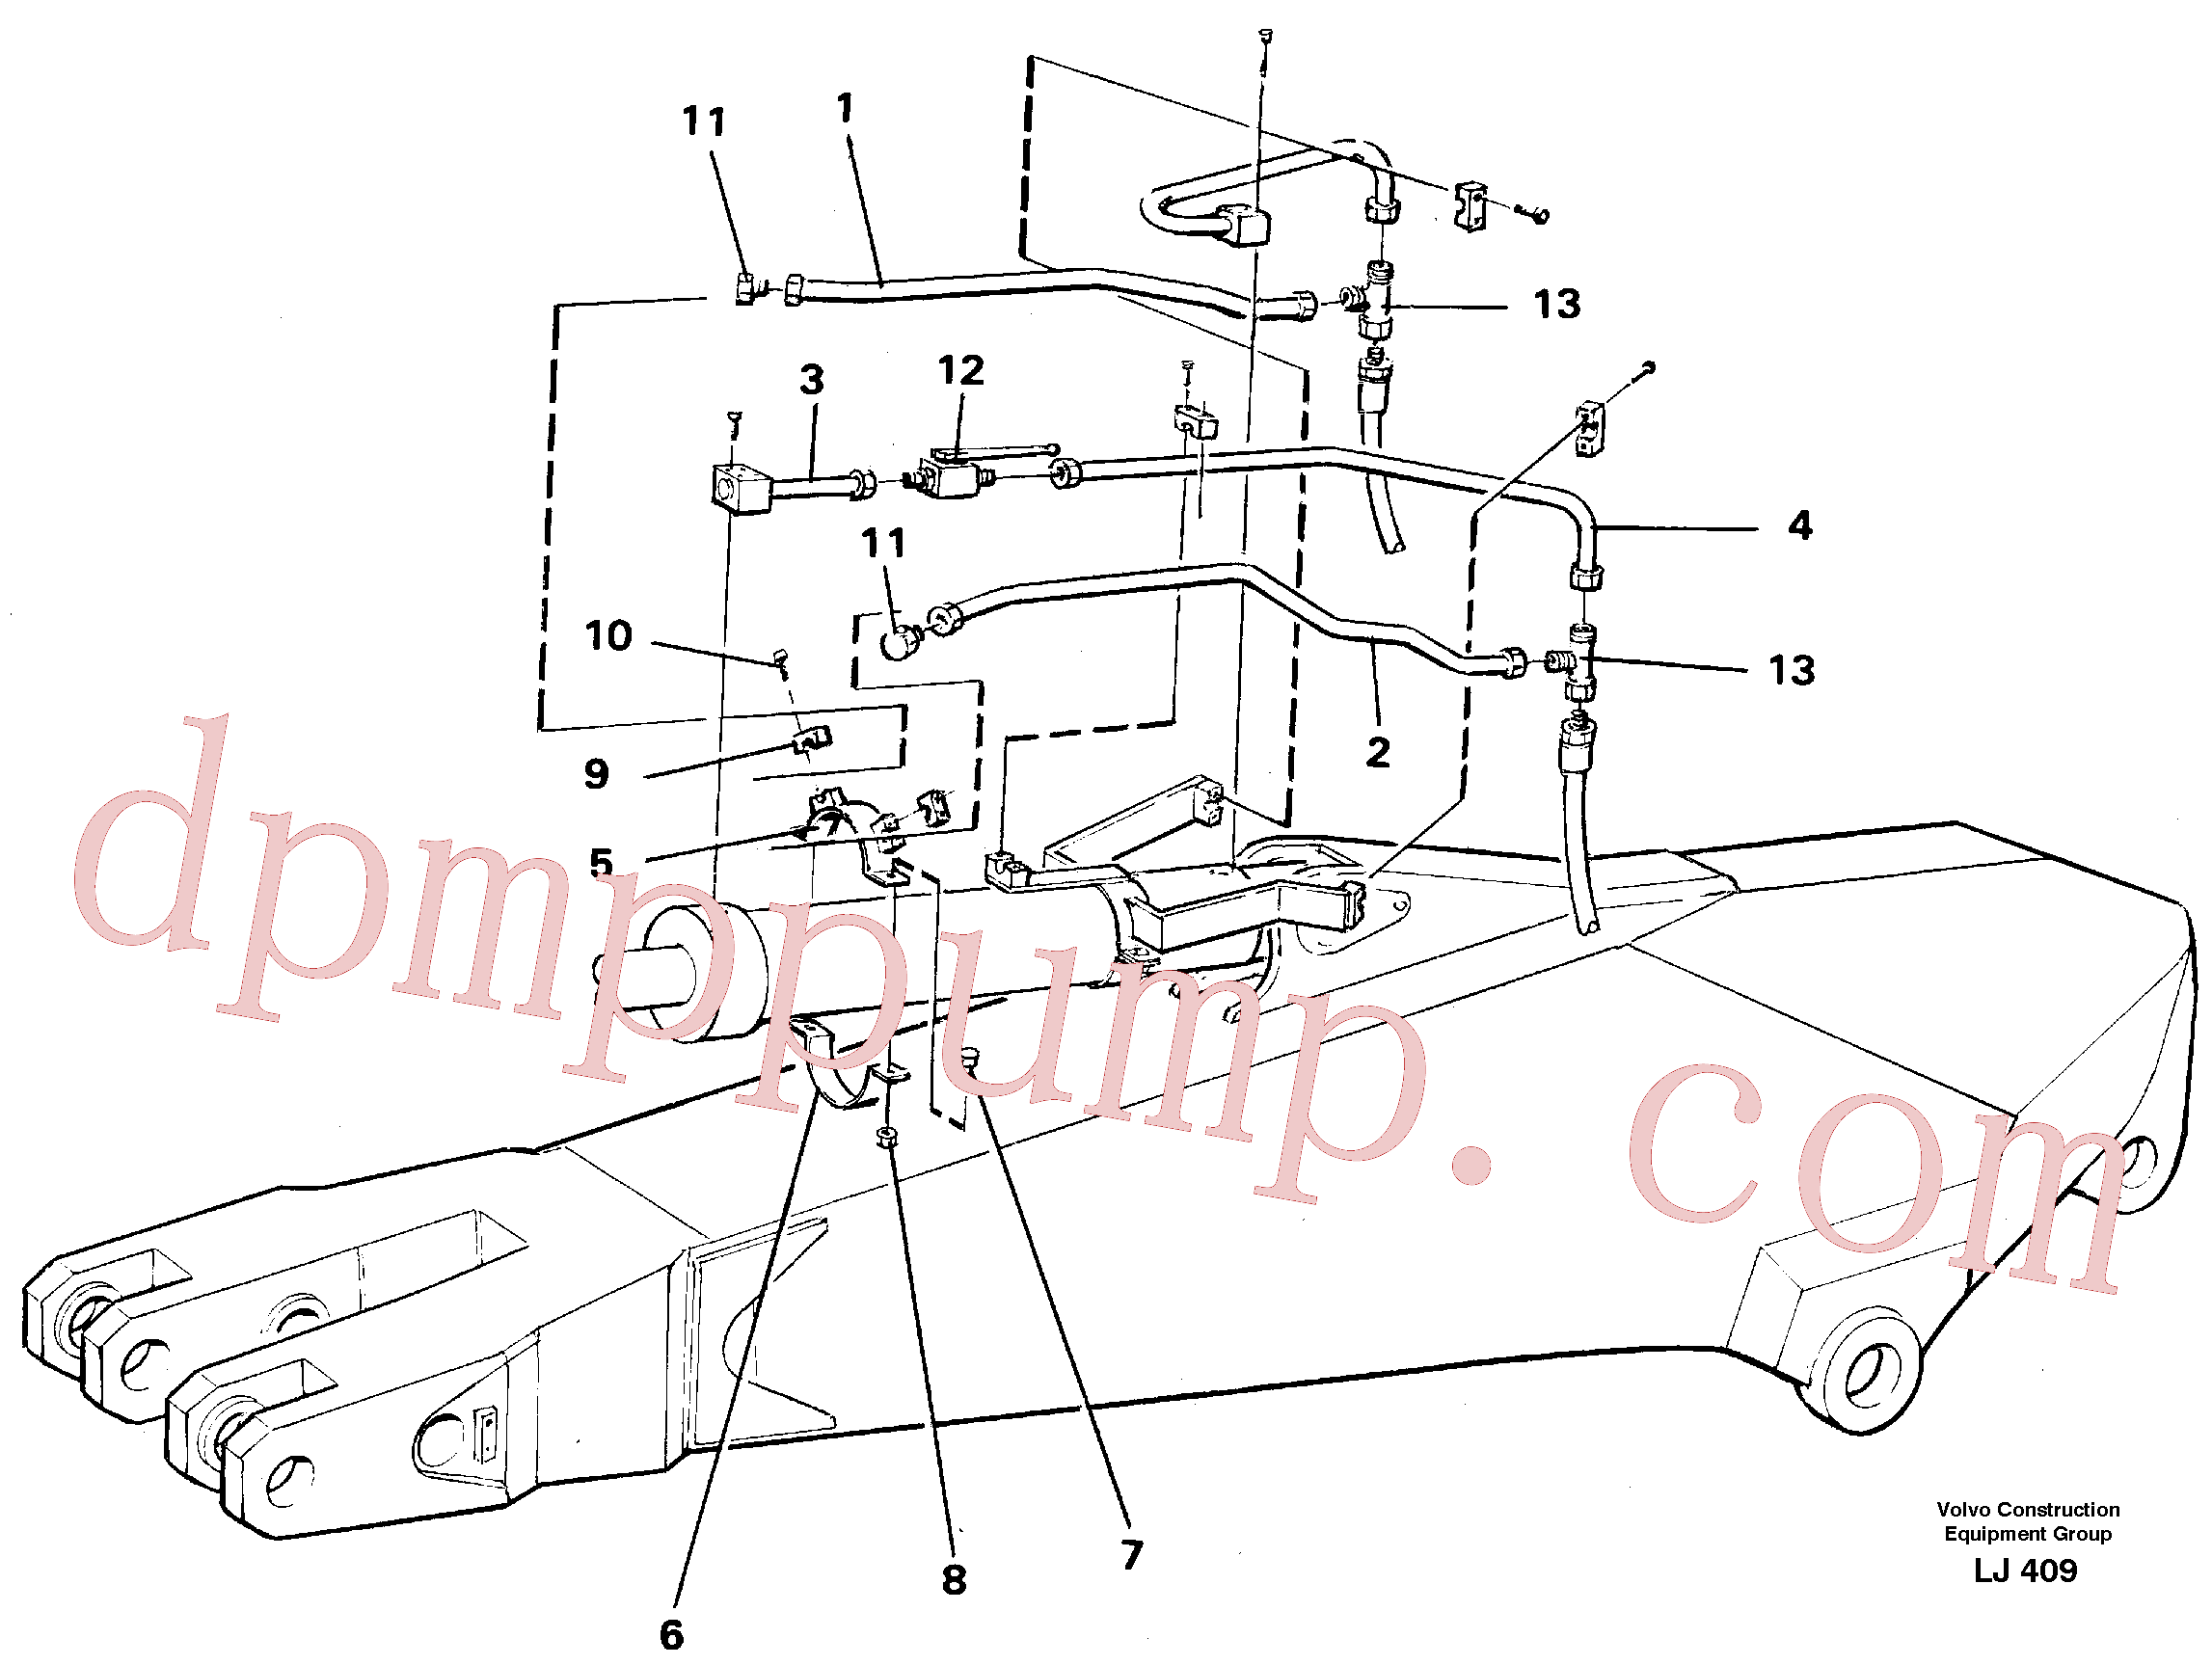 VOE14249978 for Volvo Parallel connected grab hydraulics on dipper arm.(LJ409 assembly)